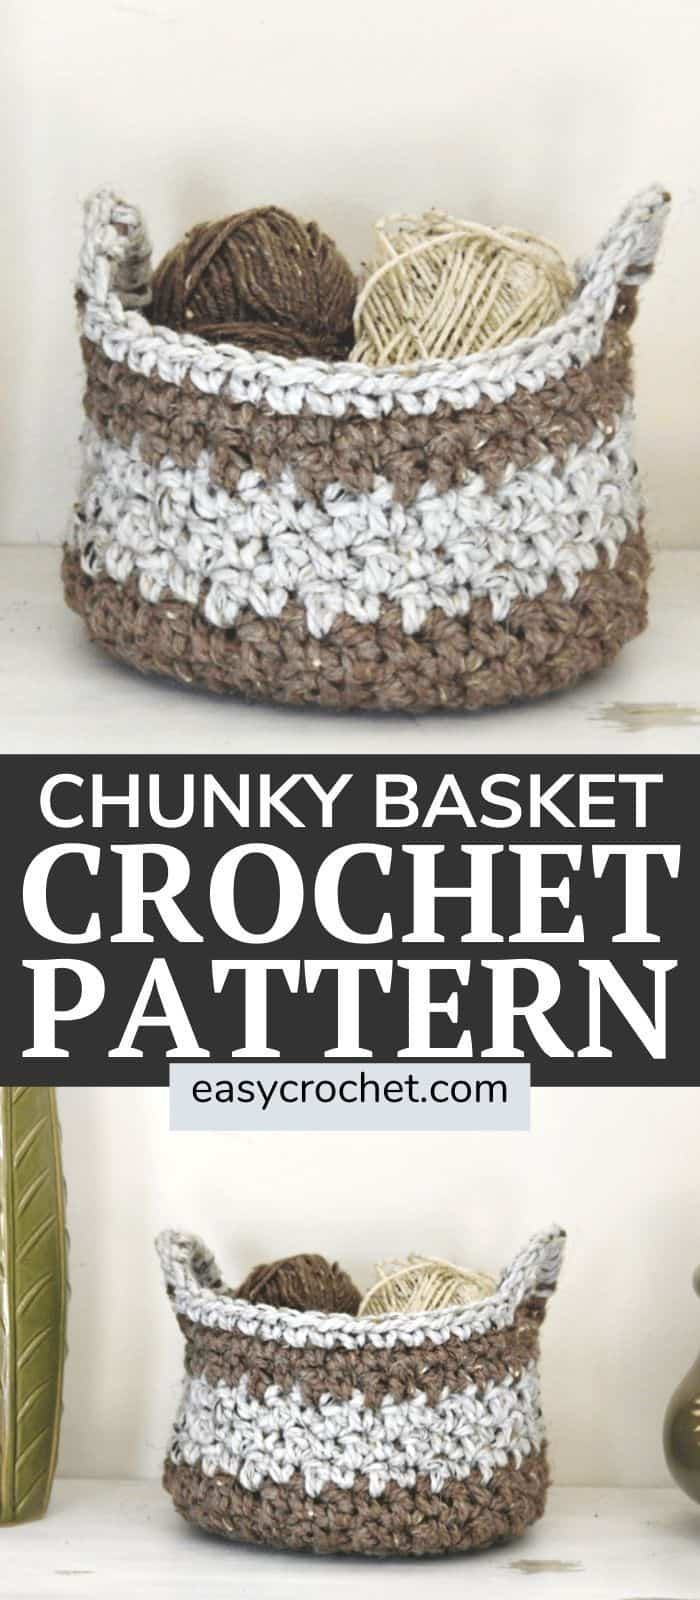 Free Crochet Basket Pattern using Chunky Yarn! Great project for newer crocheters who want to try something a bit challenging! via @easycrochetcom